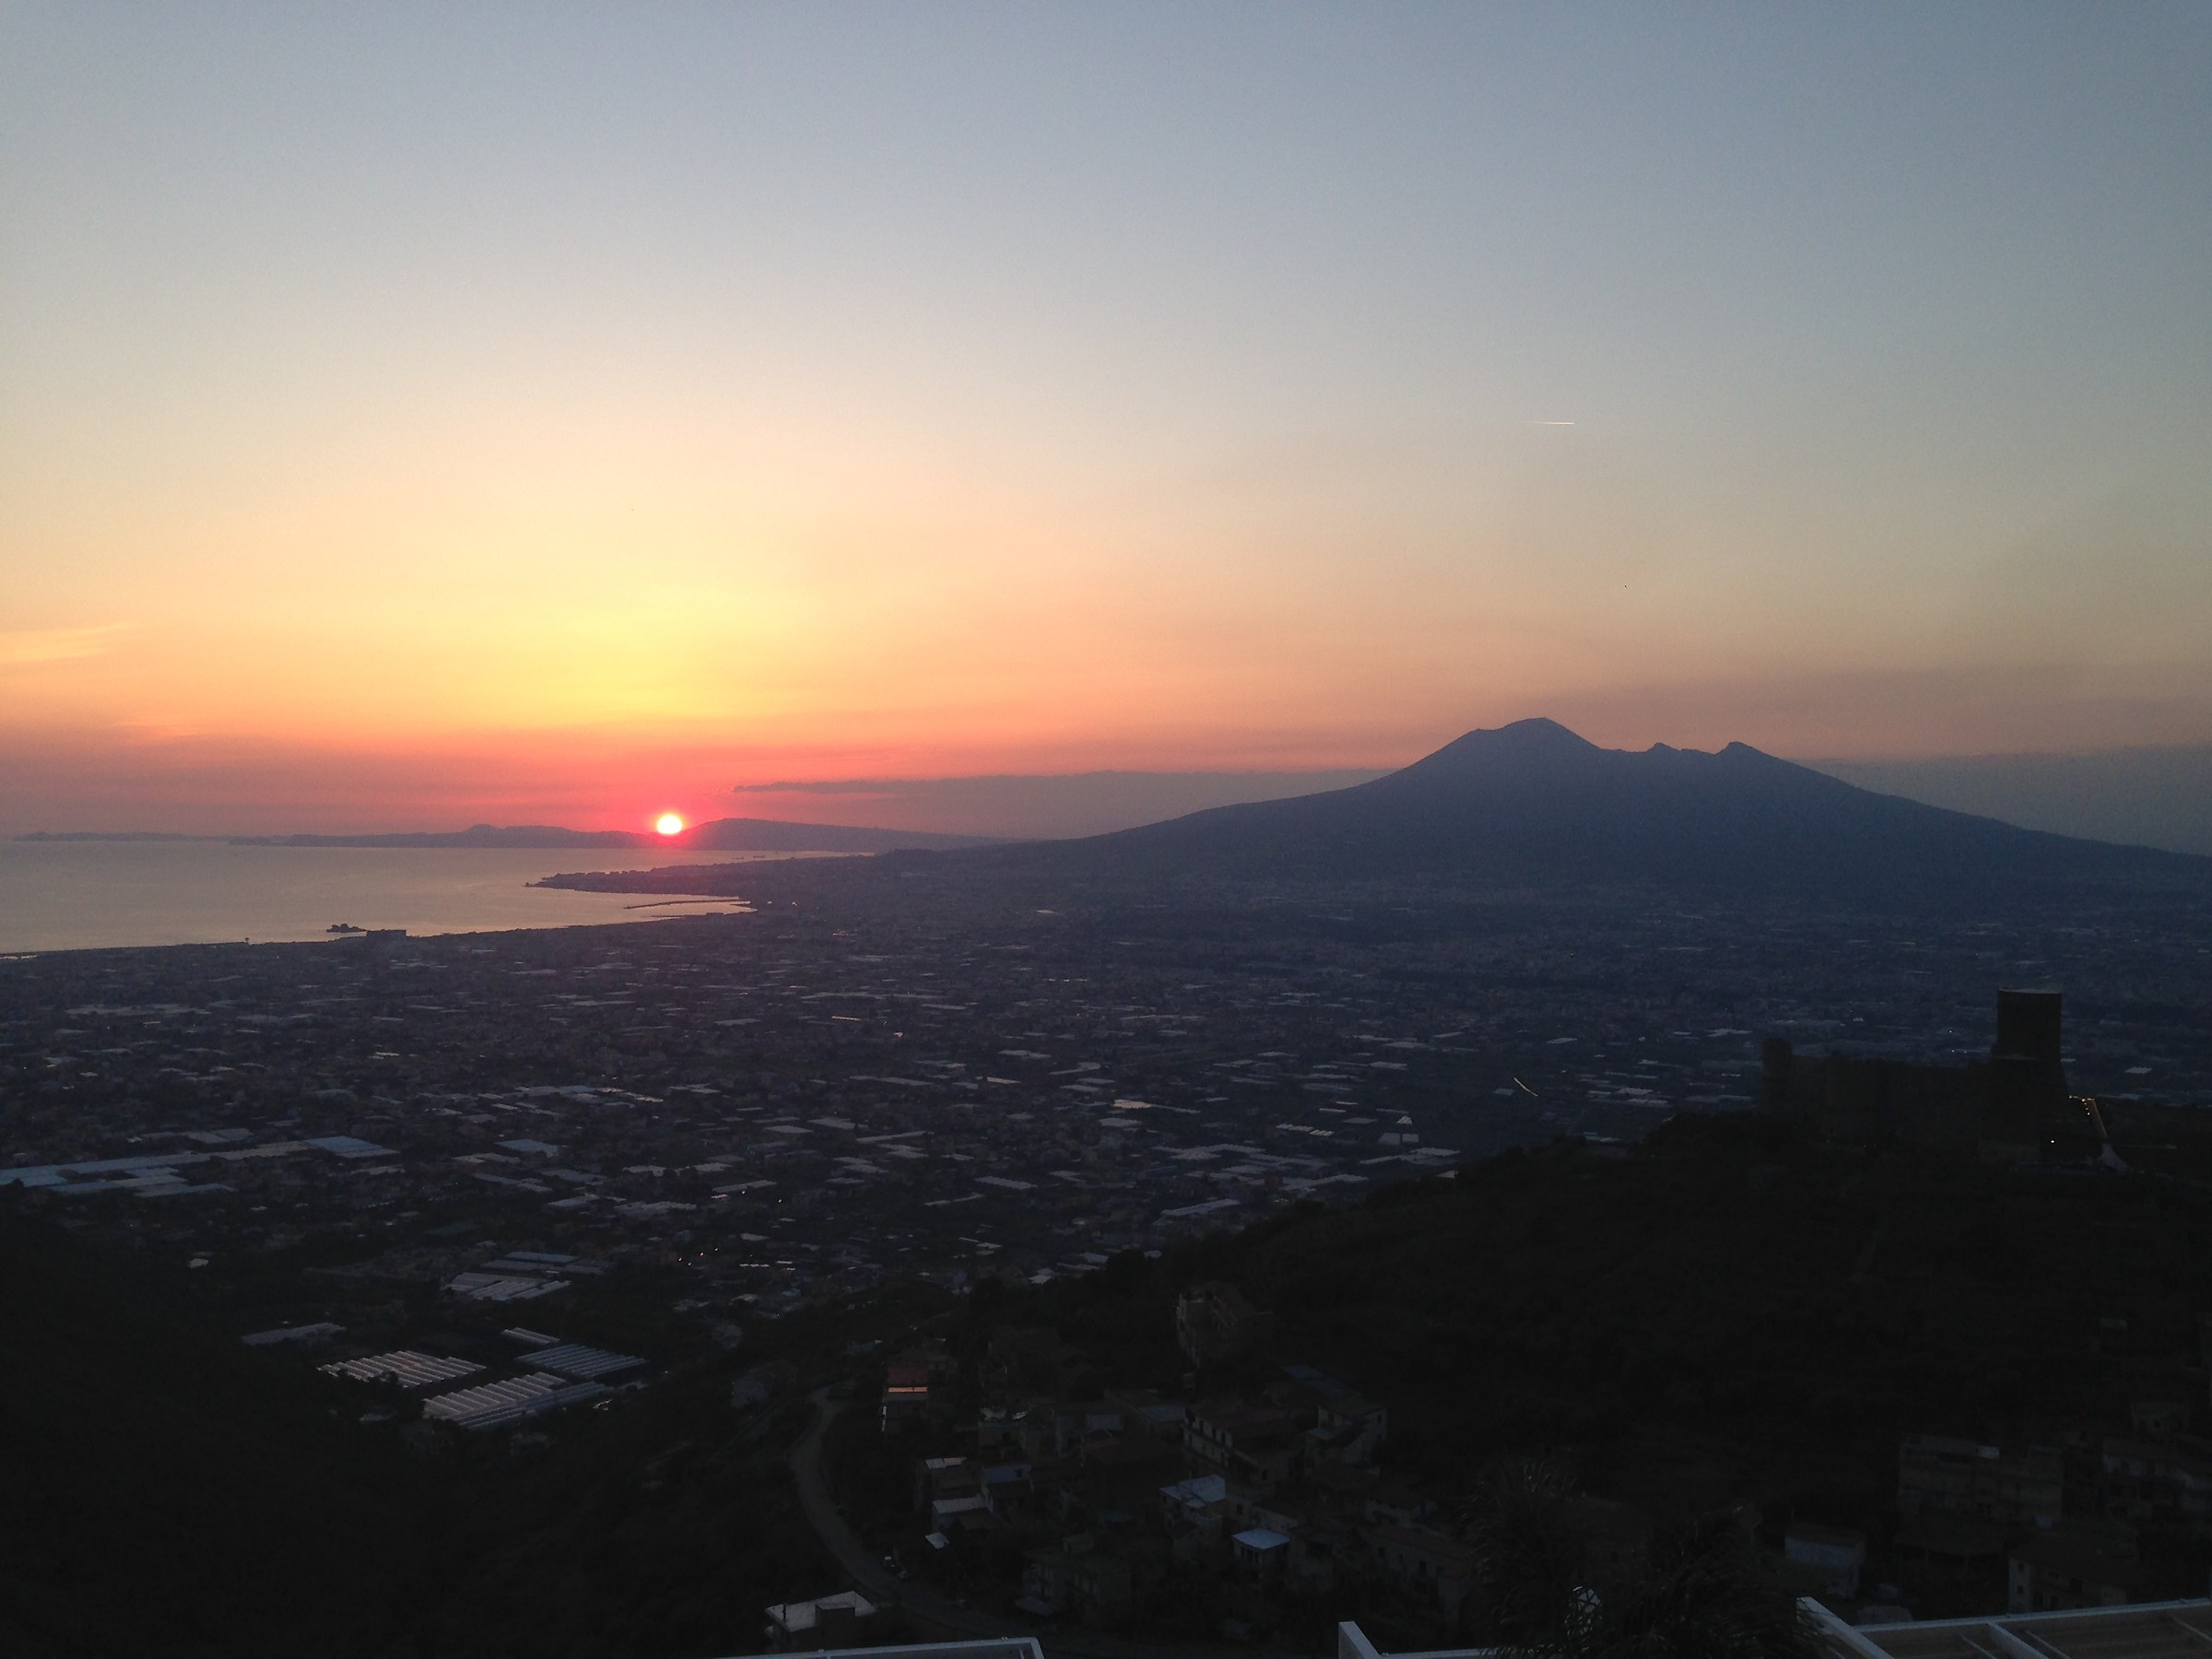 Neapolitan sunset...